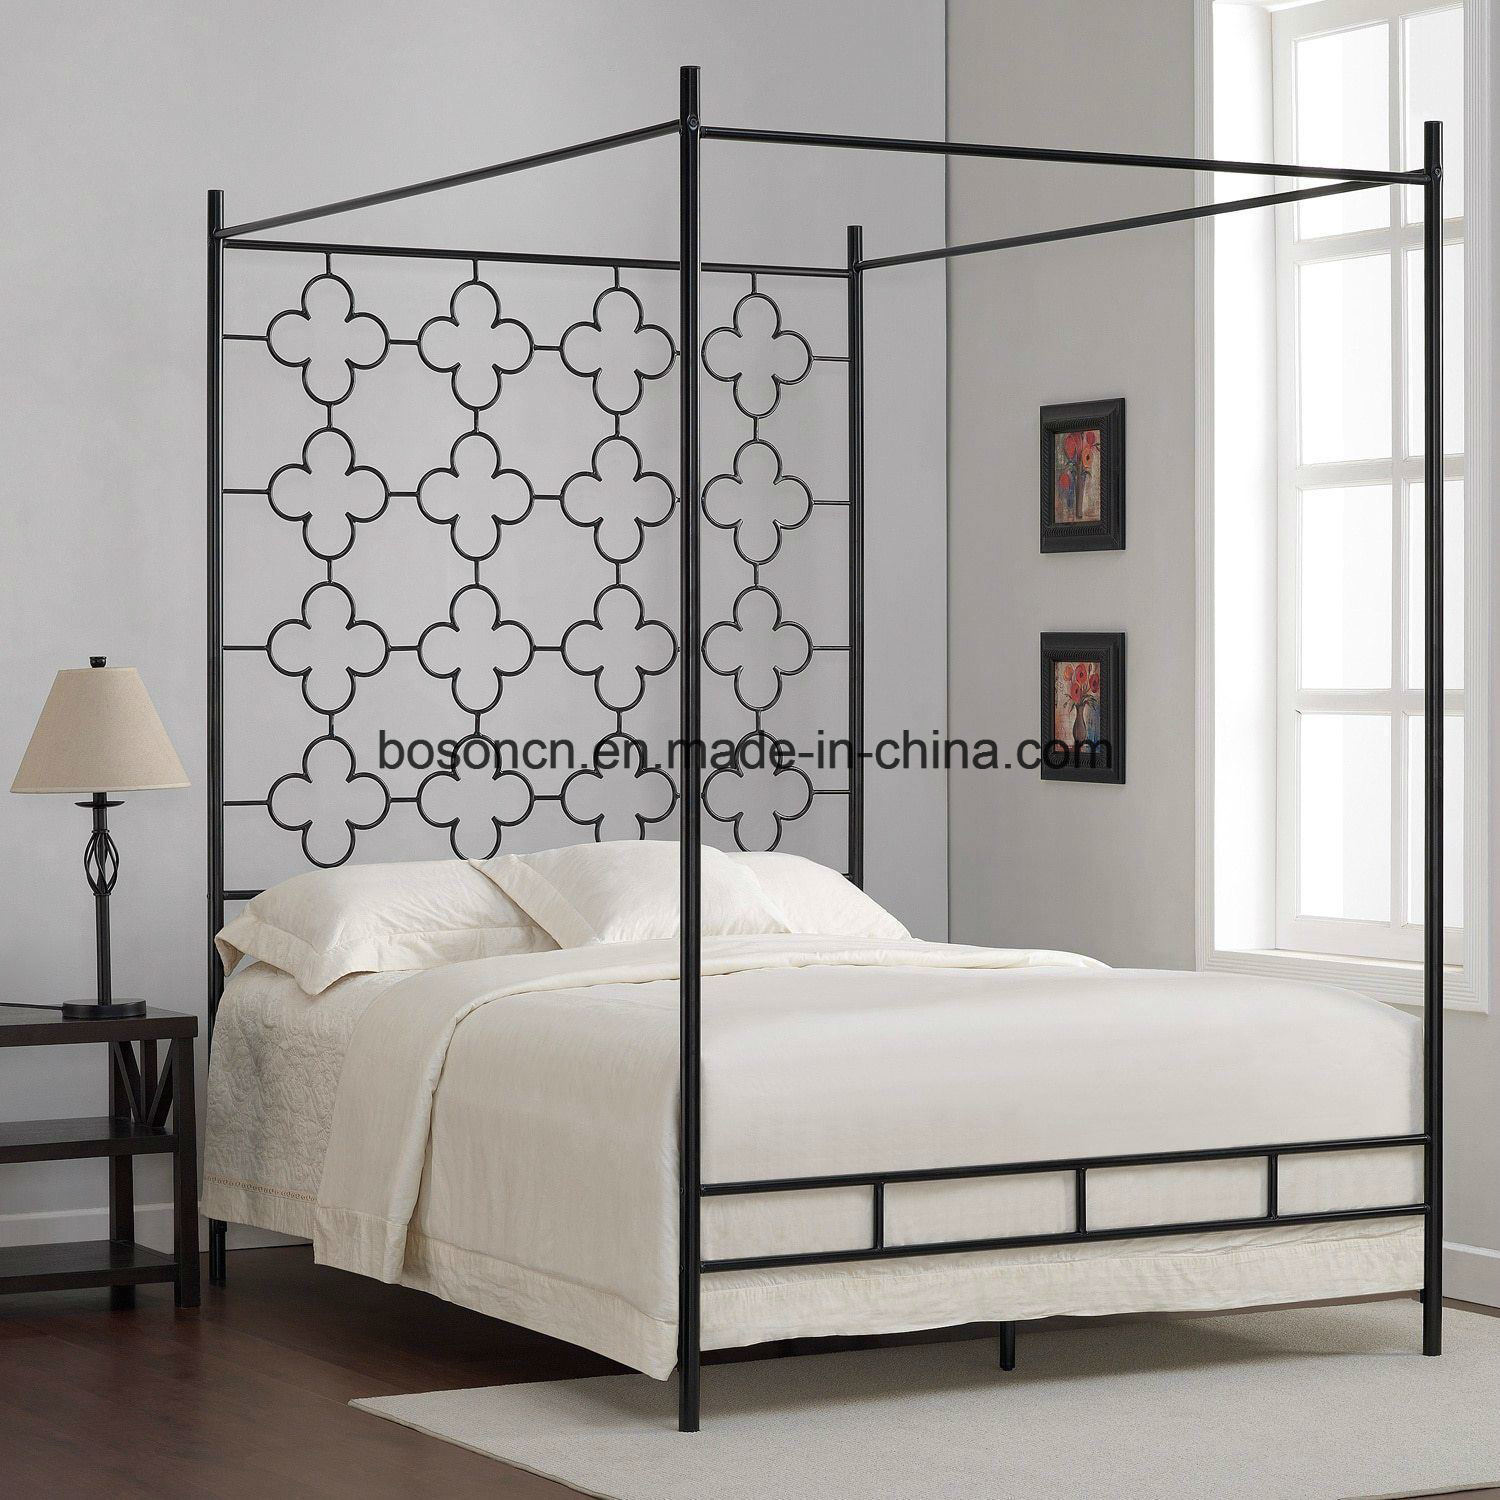 - China Unique Metal Canopy Bed Frame - China Metal Canopy Bed